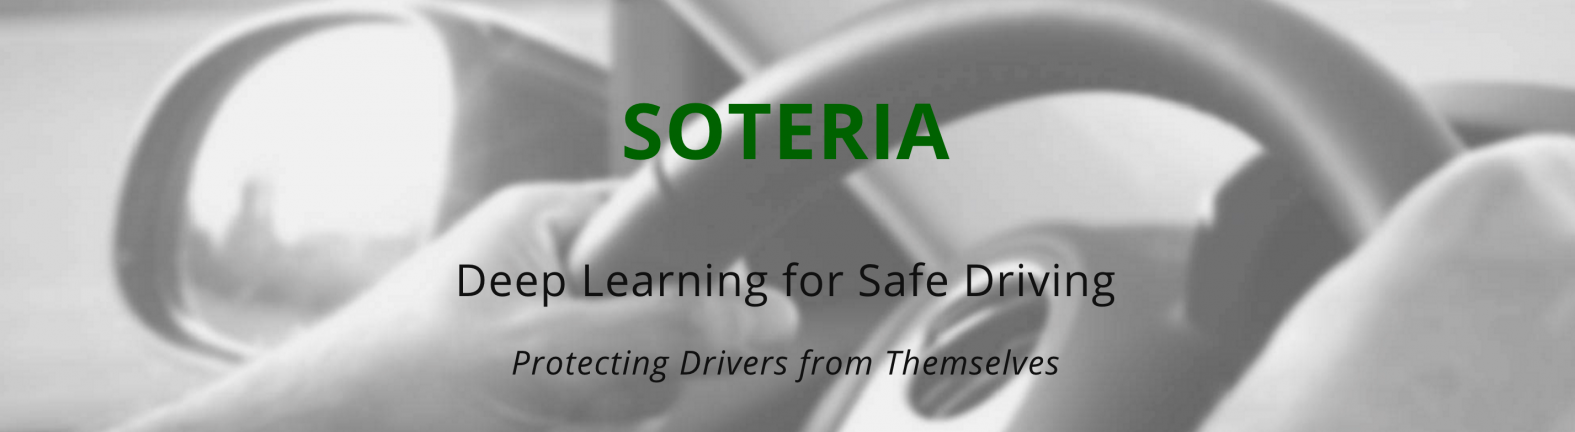 soteria_distracted_driver_detection.png